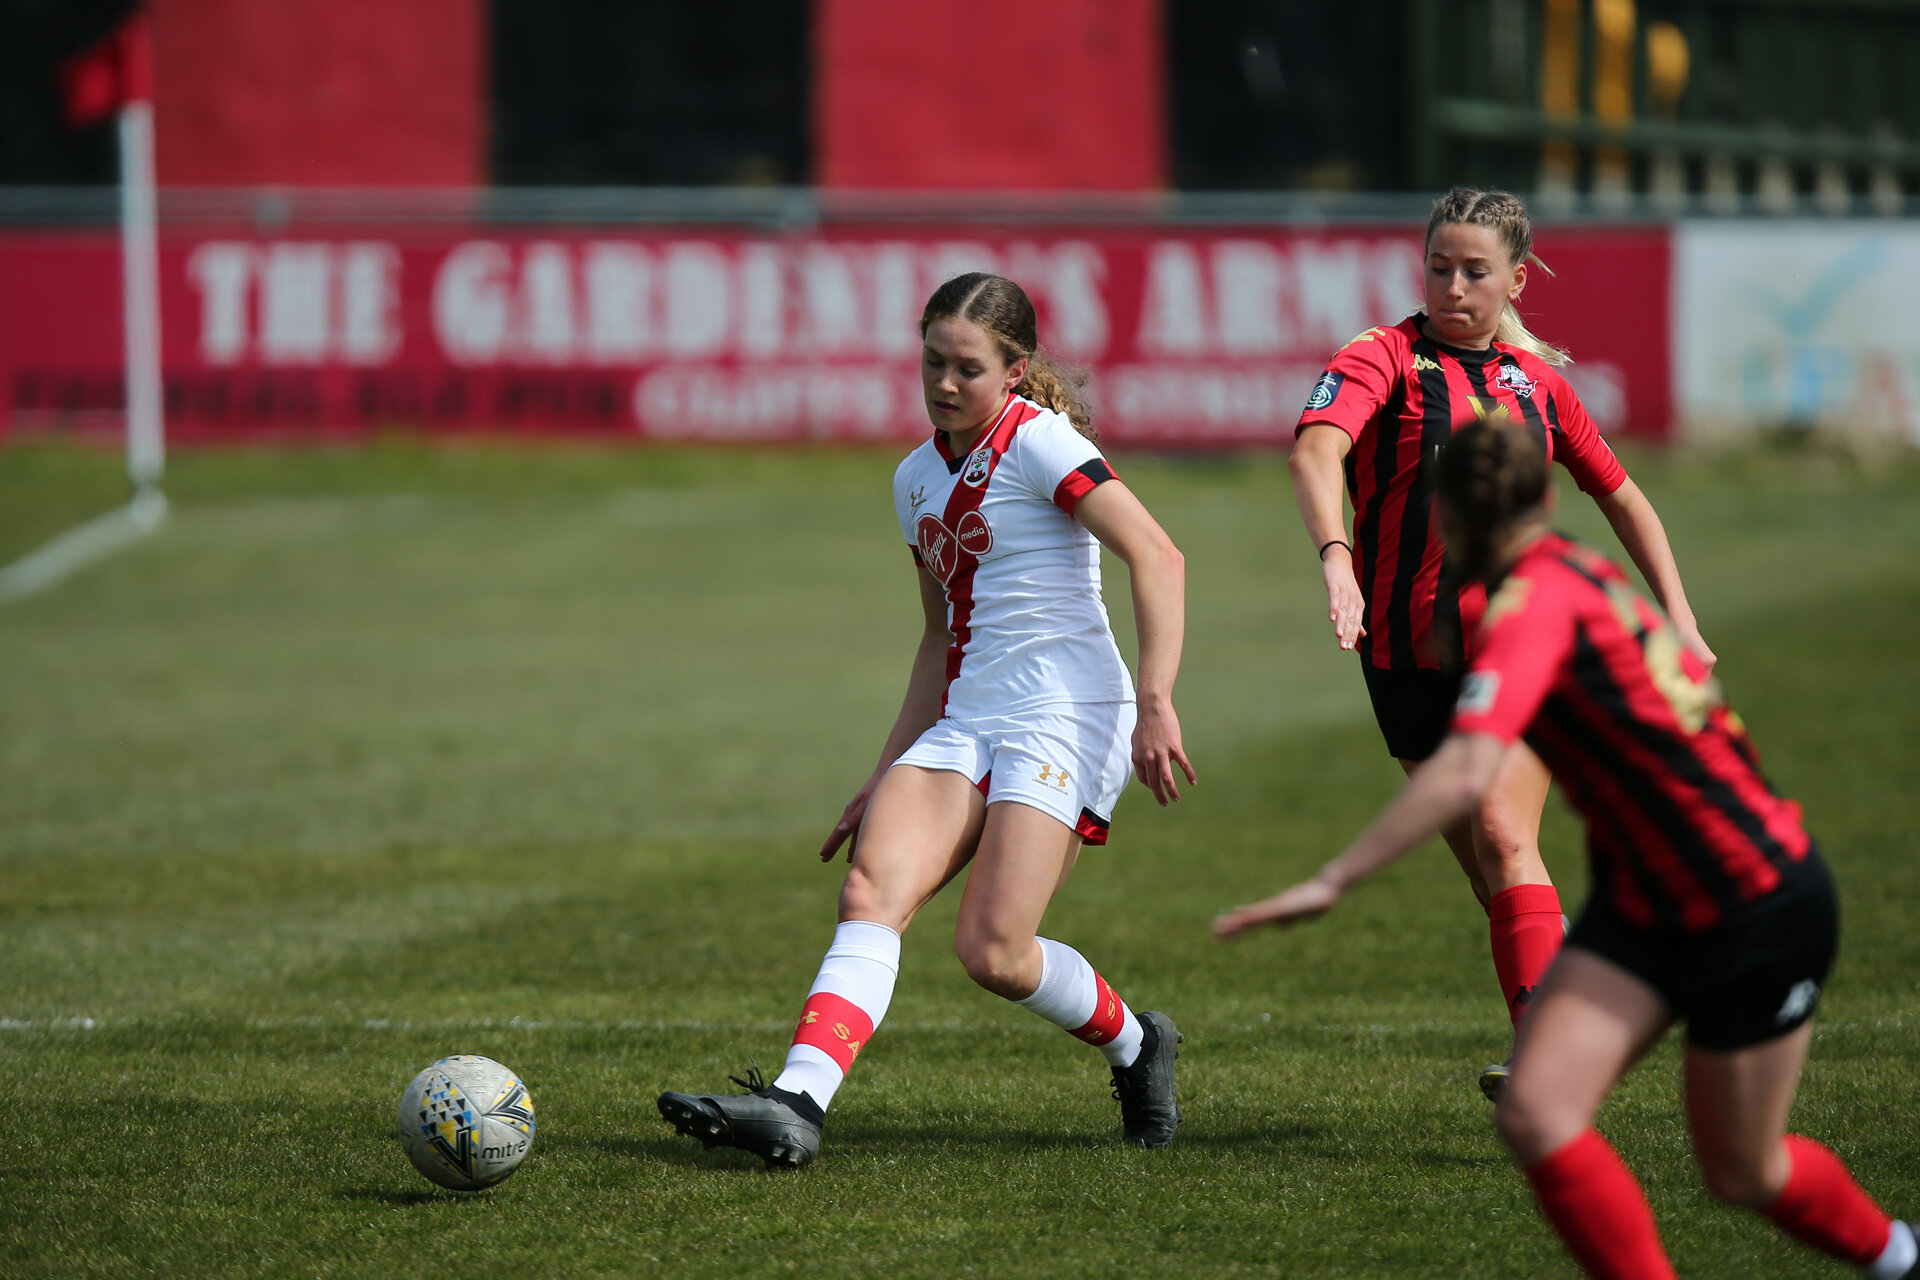 LEWES, ENGLAND - APRIL 18:  during the Women's FA Cup 4th round match between Lewes FC and Southampton at The Dripping Pan on April 18, 2021 in Lewes, United Kingdom. Sporting stadiums around the UK remain under strict restrictions due to the Coronavirus pandemic as UK government social distancing laws prohibit fans inside venues resulting in games being played behind closed doors. (Photo by Chris Moorhouse/Southampton FC via Getty Images)